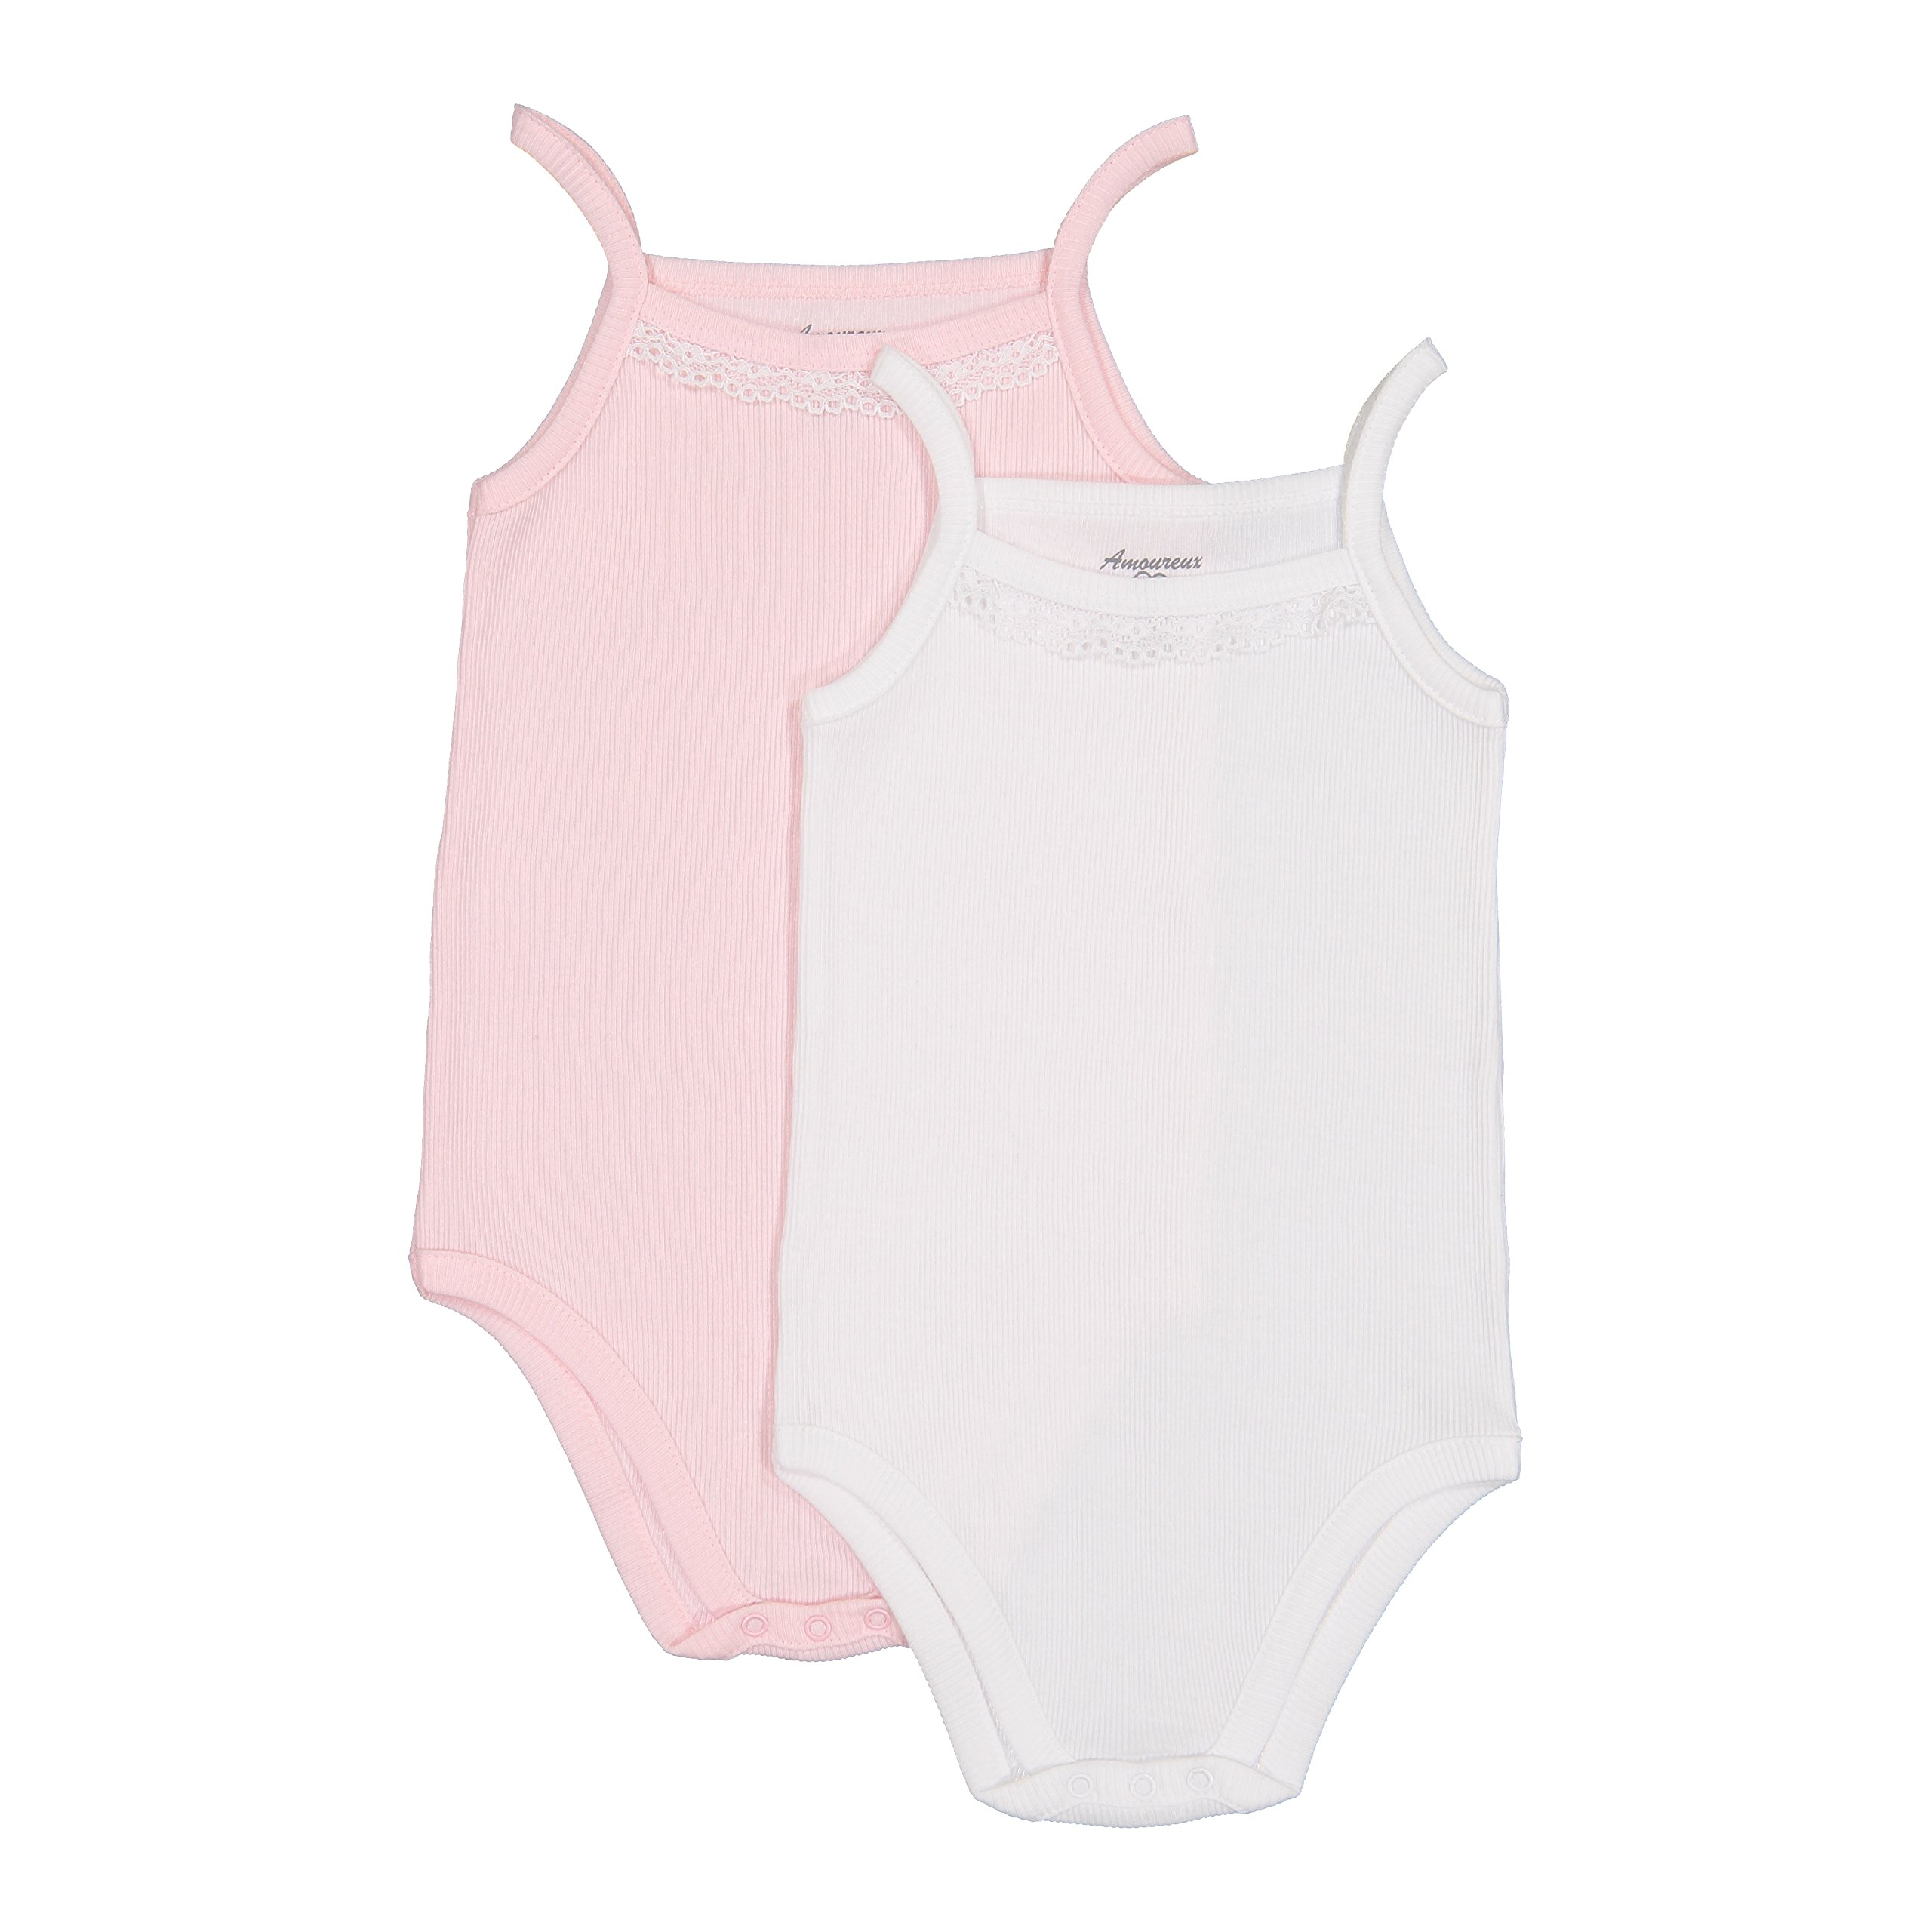 Amoureux Bebe Baby Girls Camisole Onesies 100% Cotton Ribbed White/Pink 2pk 3m